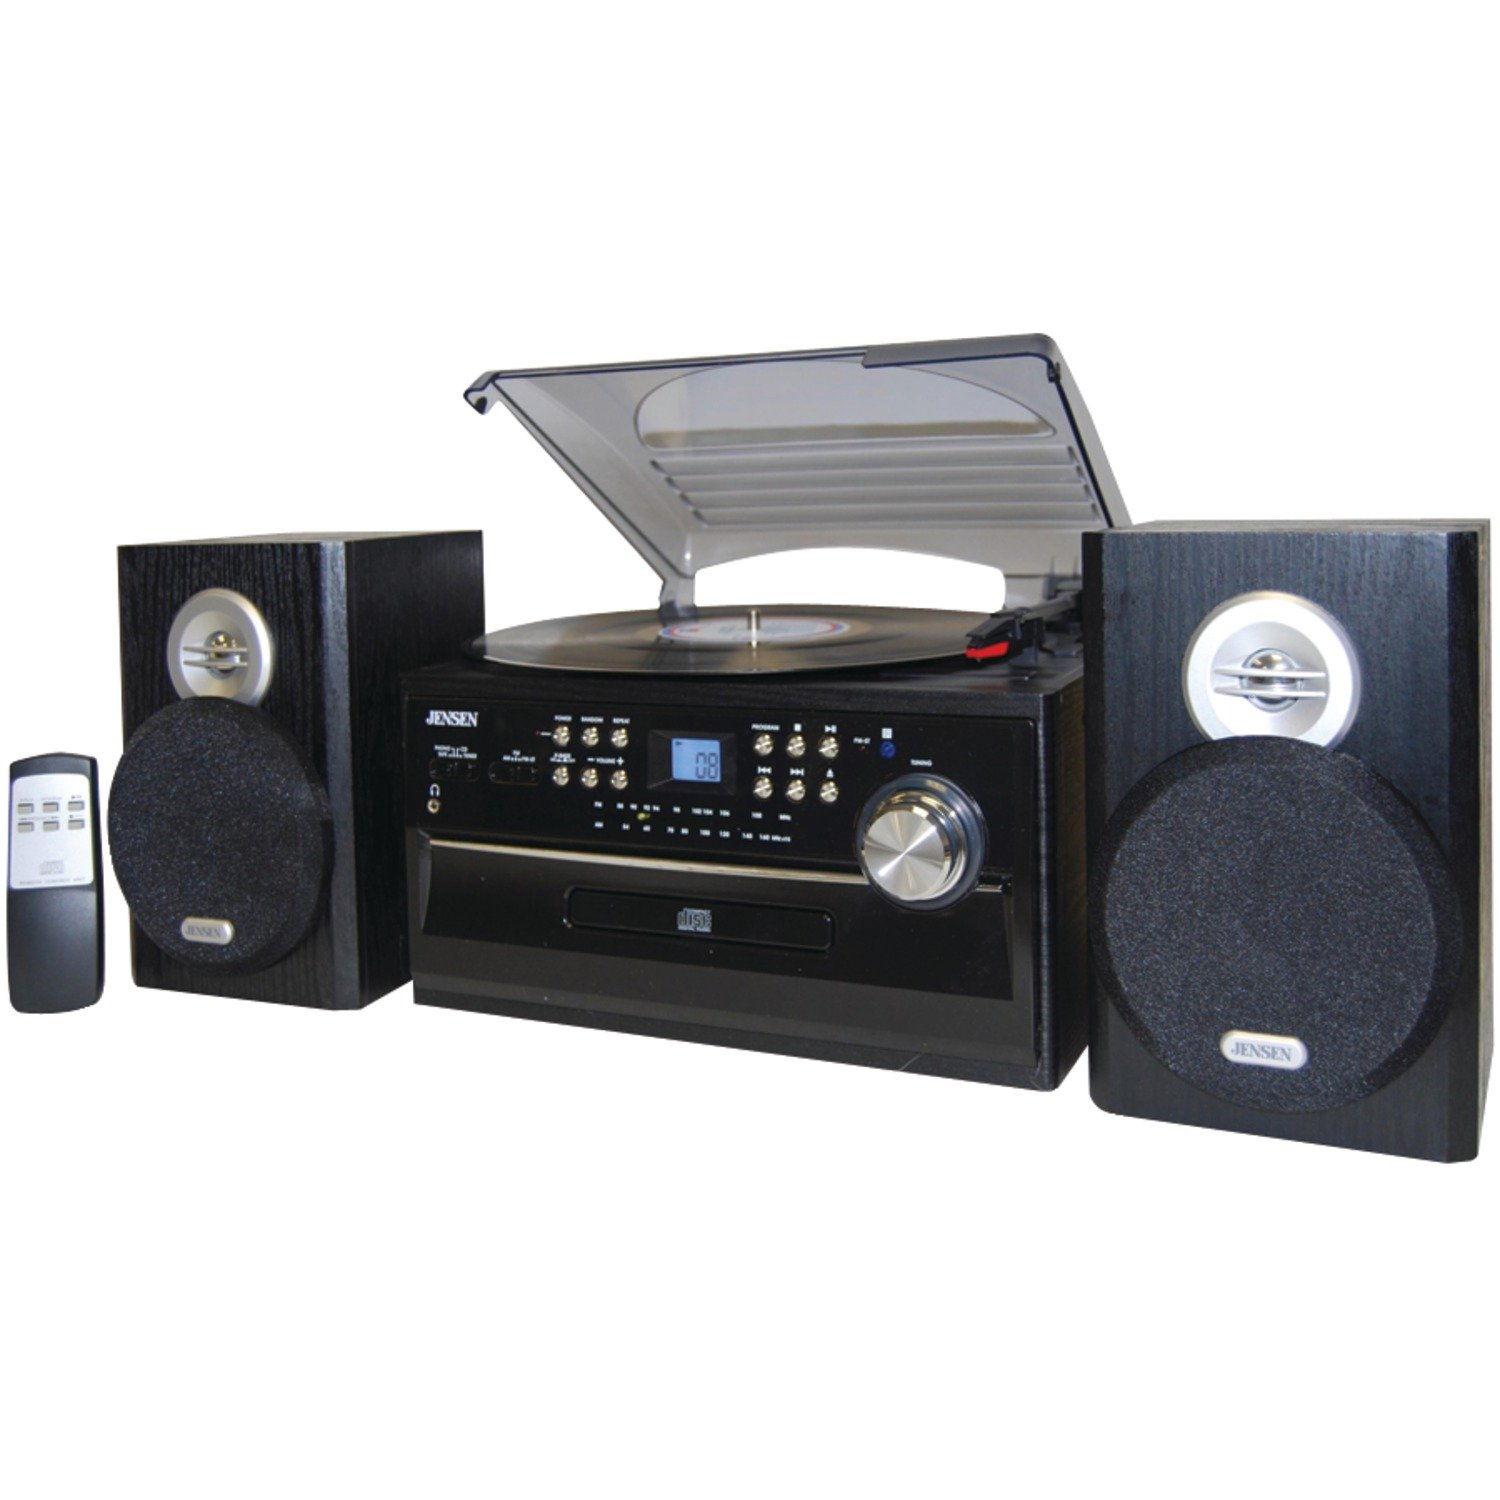 jensen jta475b 3 speed turntable with cd am fm stereo. Black Bedroom Furniture Sets. Home Design Ideas